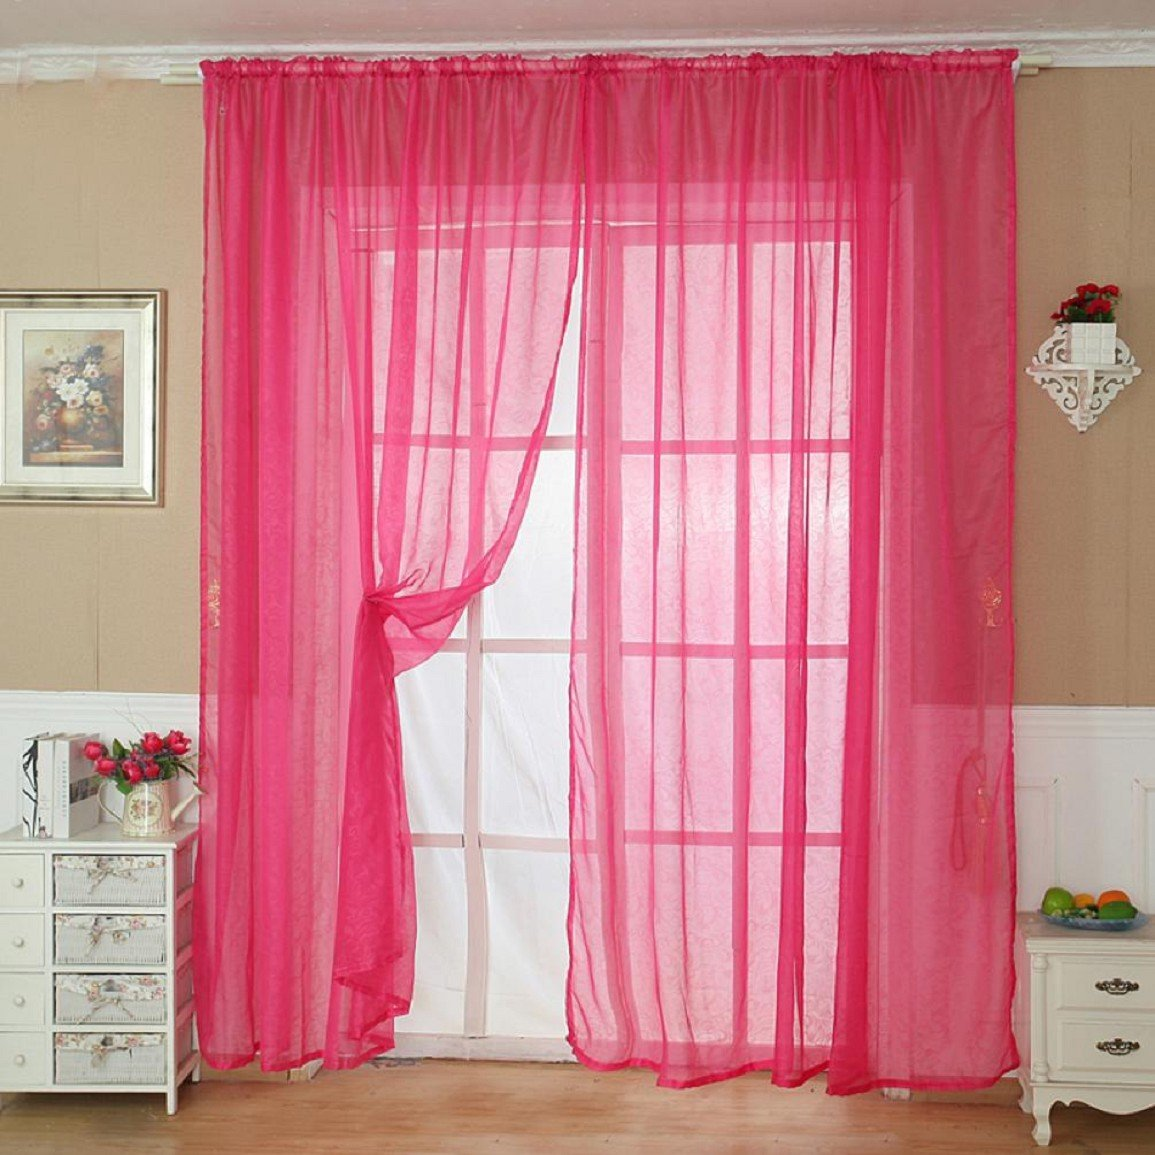 Changeshopping Solid Color Tulle Door Window Curtain Drape Panel Sheer Scarf Valance (Brown)